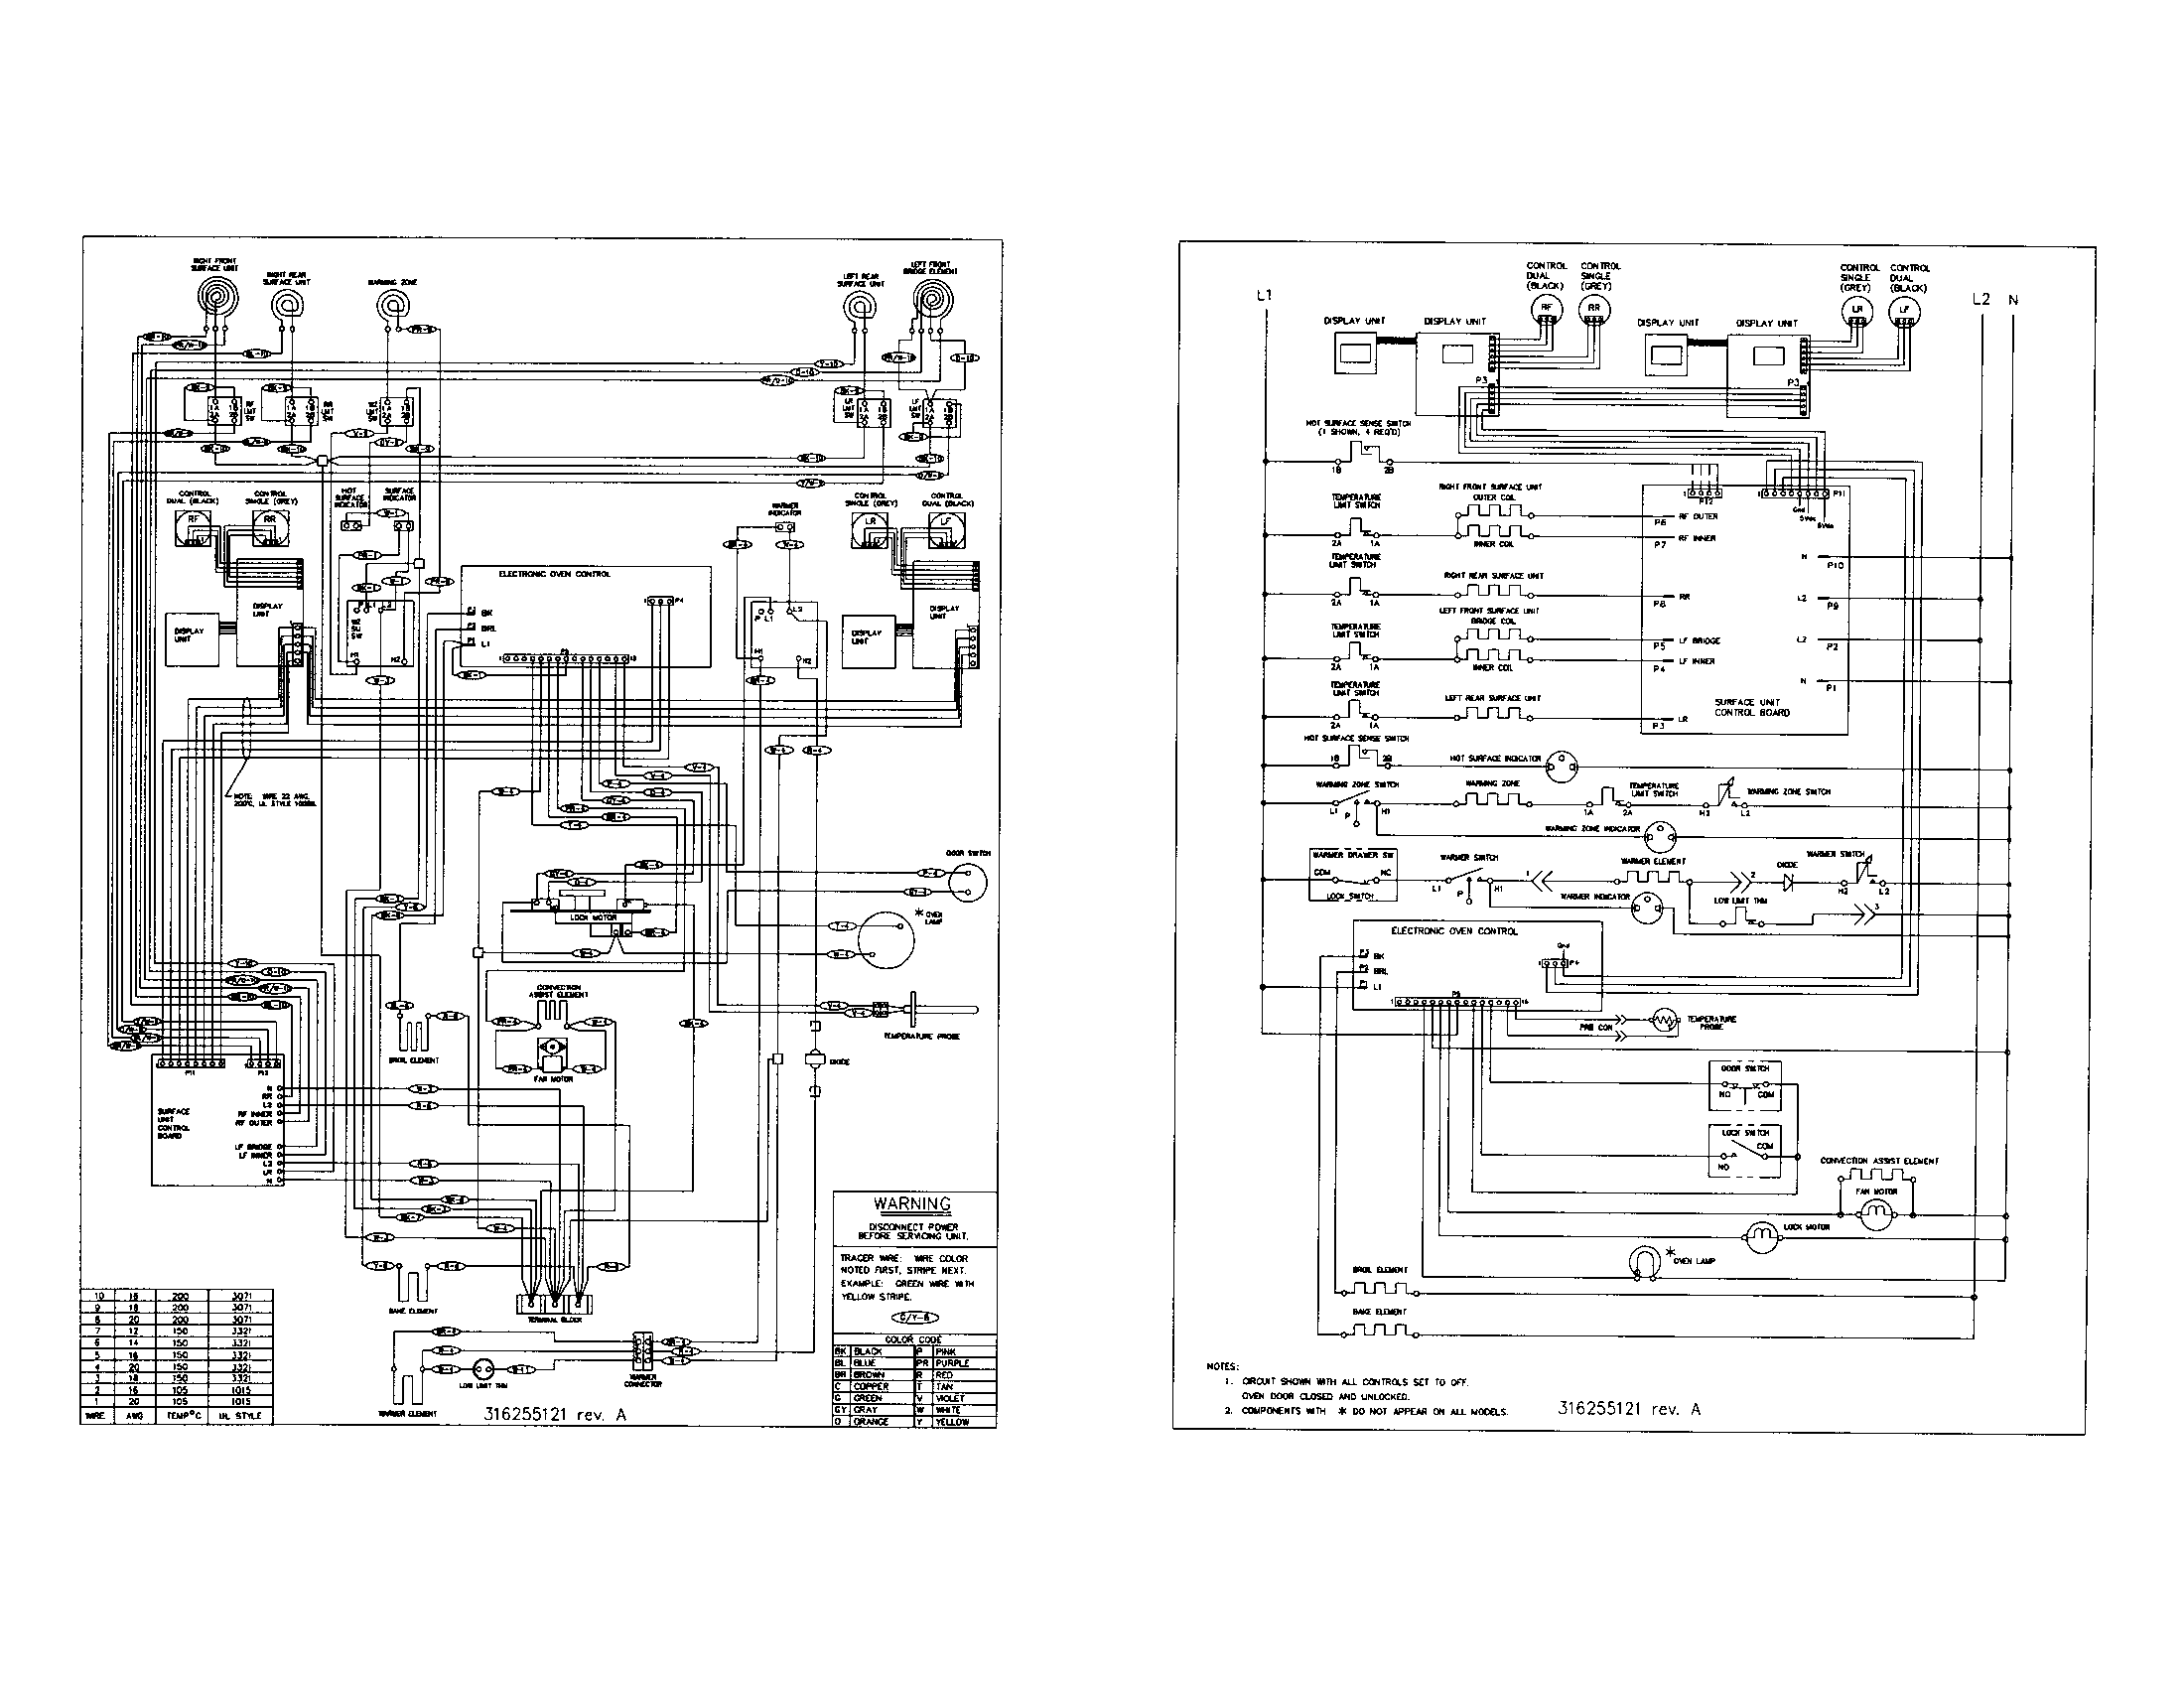 Wiring Kitchenaid Schematic Dryer Electric Keys700gq0